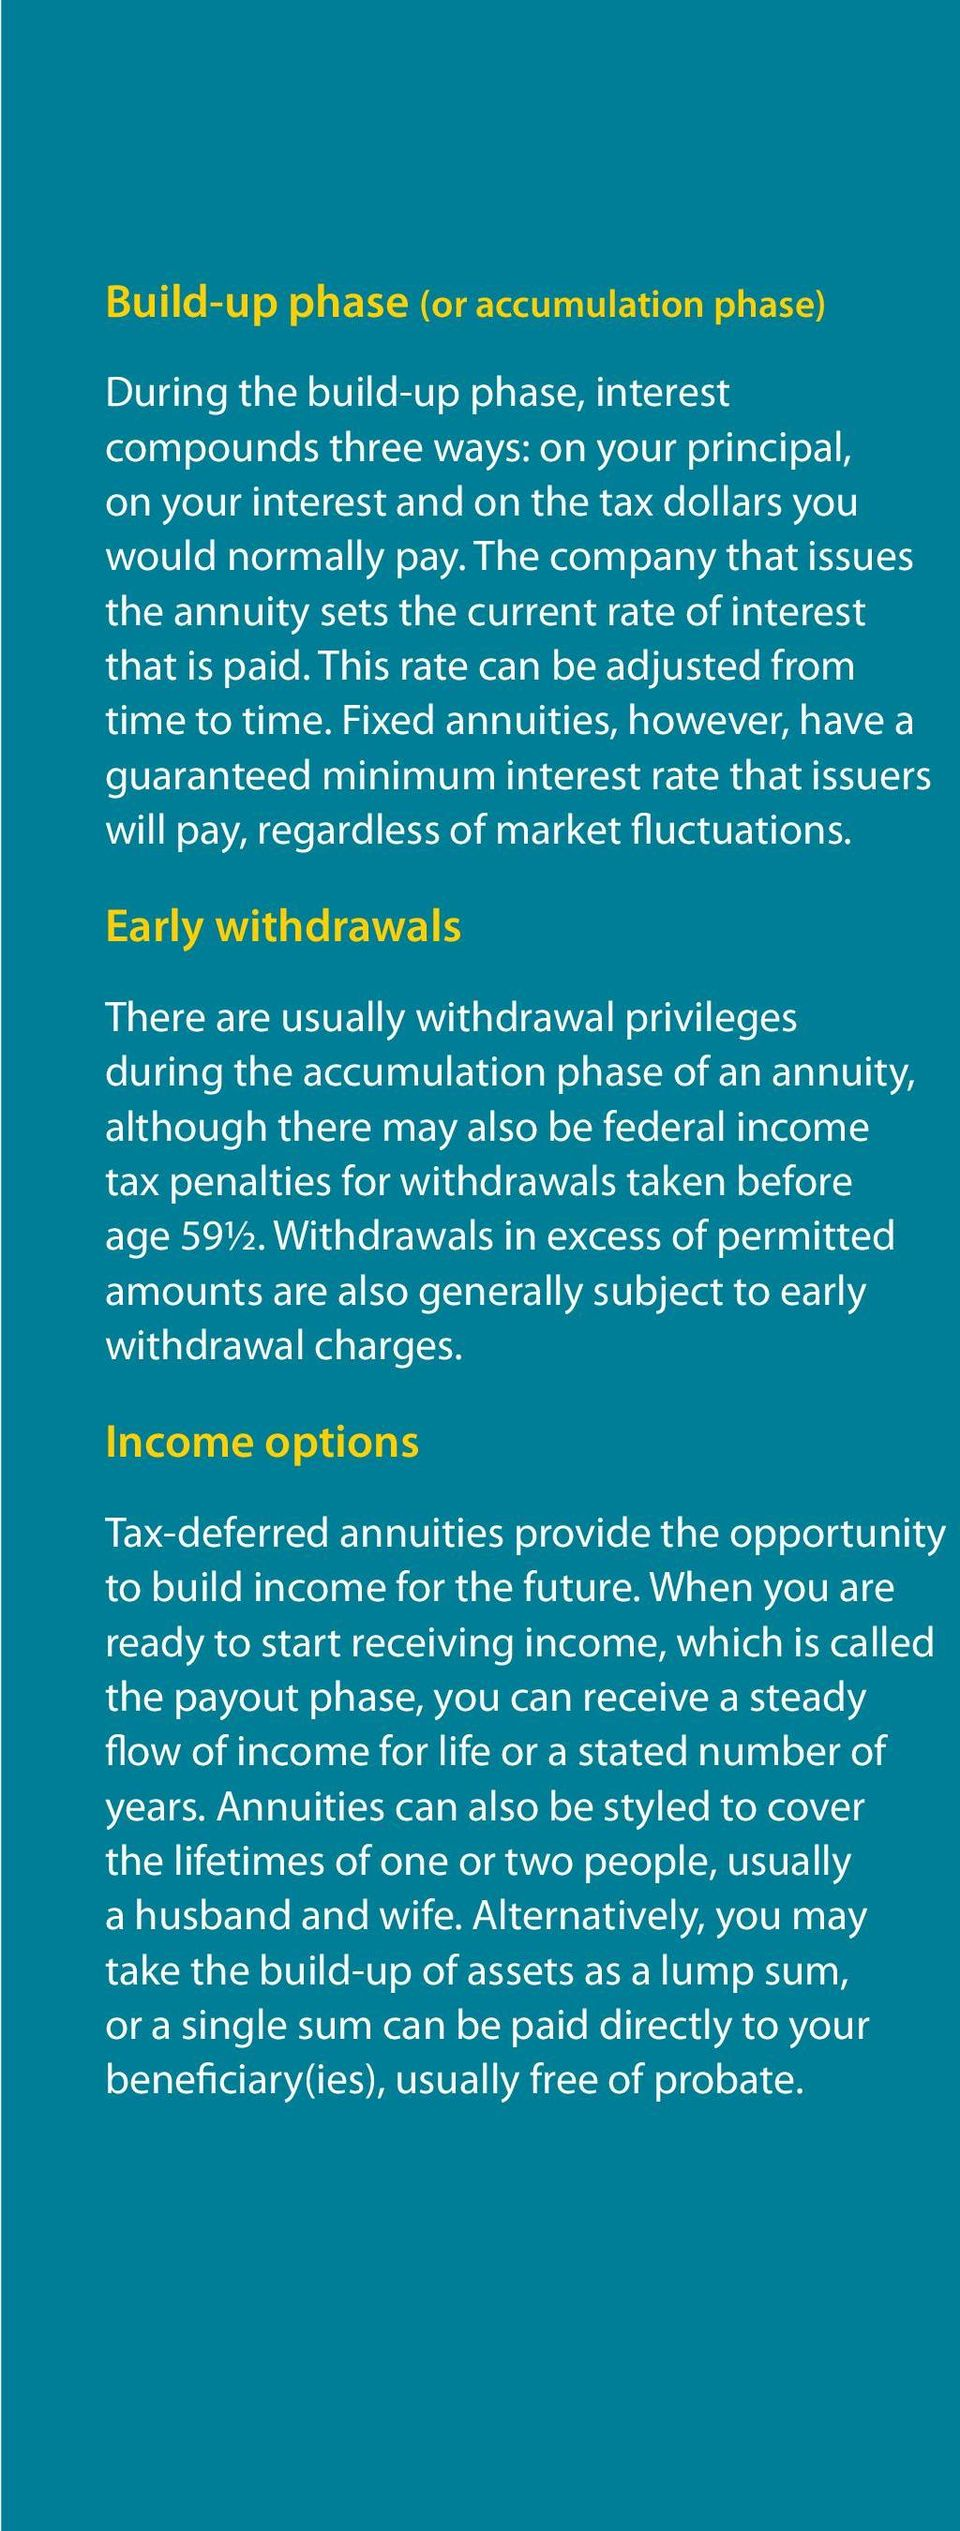 Fixed annuities, however, have a guaranteed minimum interest rate that issuers will pay, regardless of market fluctuations.